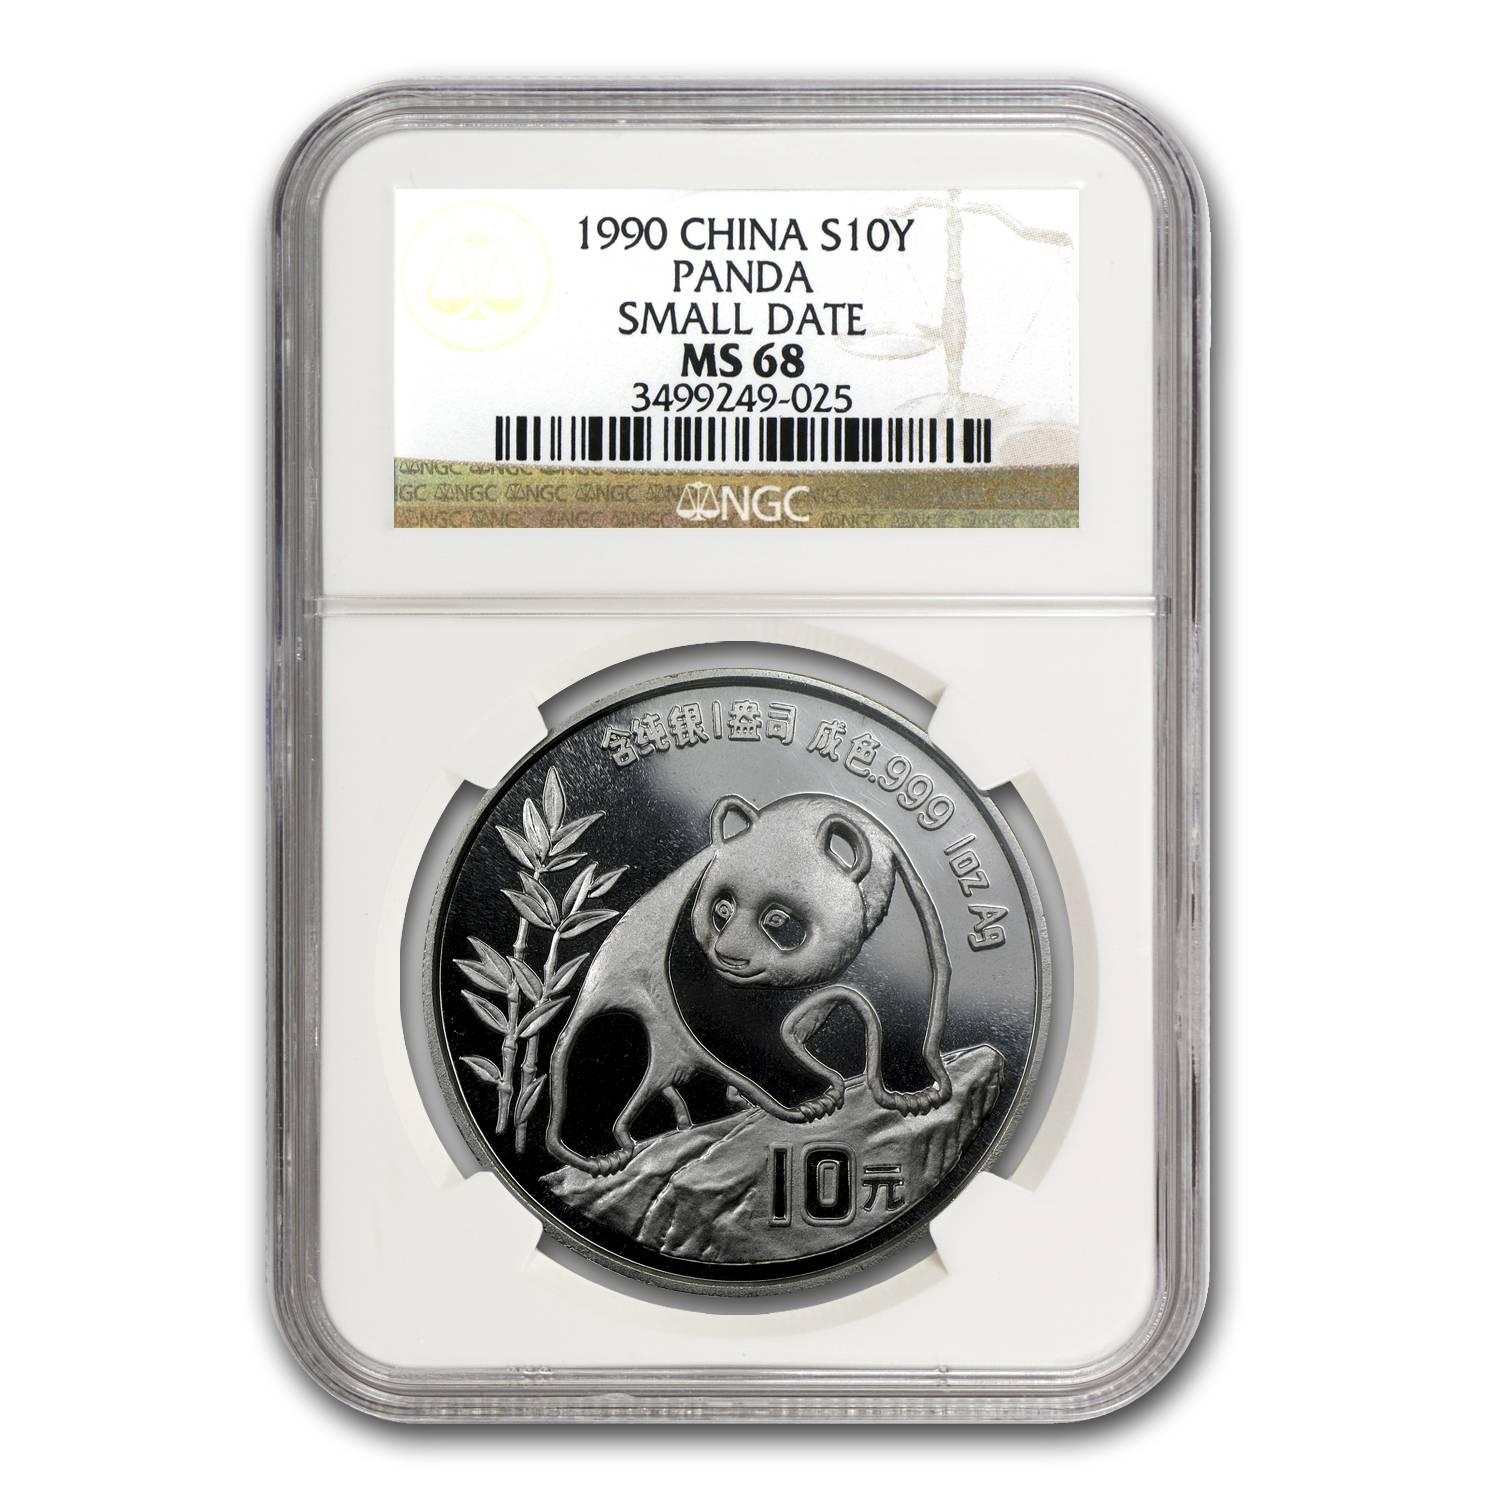 1990 China 1 oz Silver Panda MS-68 NGC (Small Date)